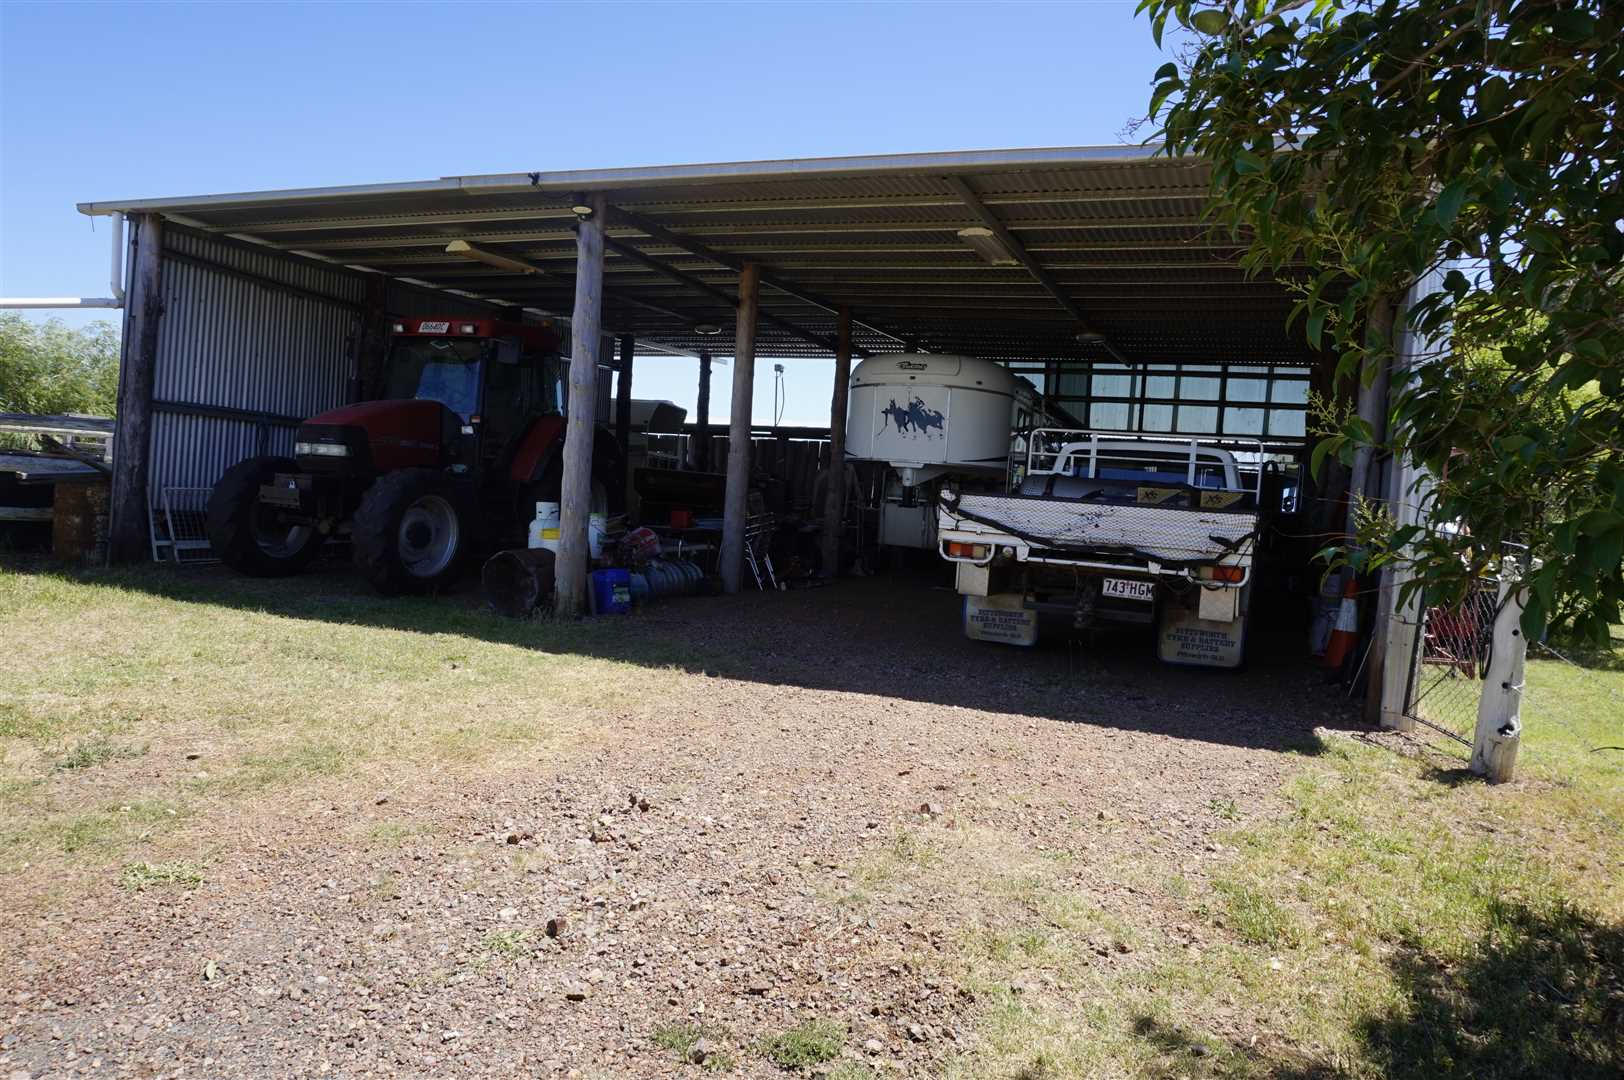 10m x 12m Vehicle shed and workshop